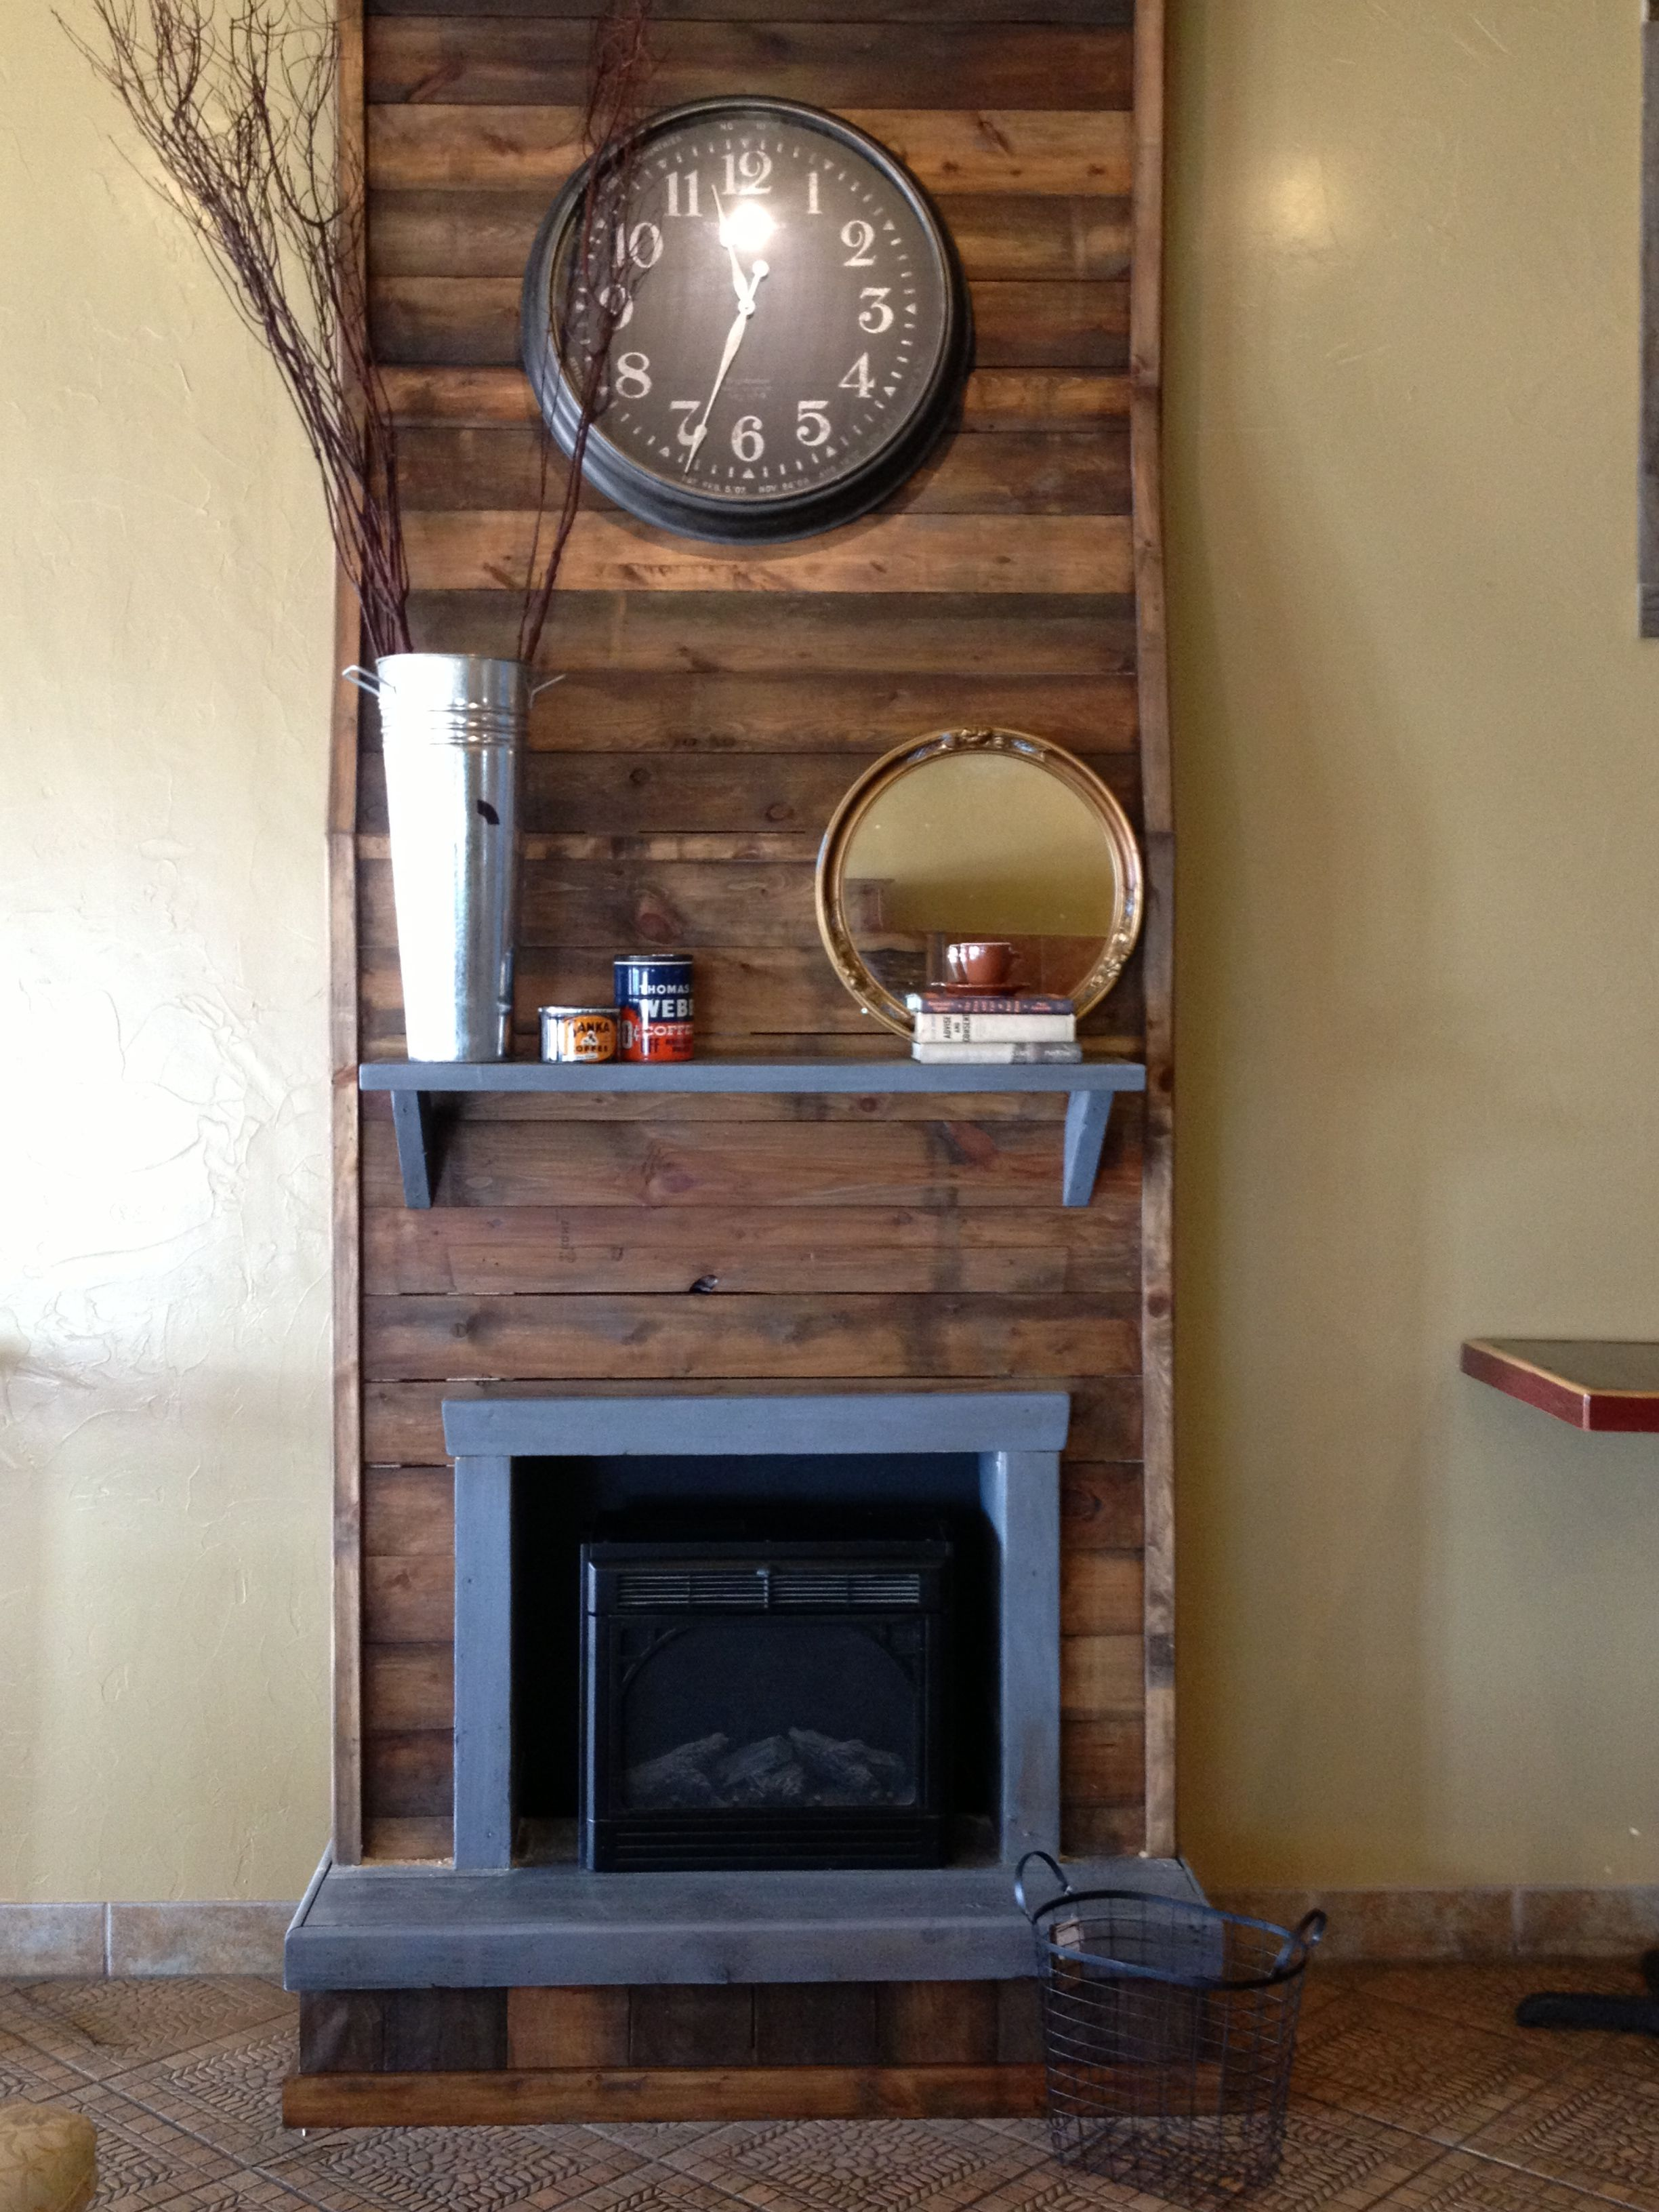 Fireplace caleo coffeehouse interiorexterior images